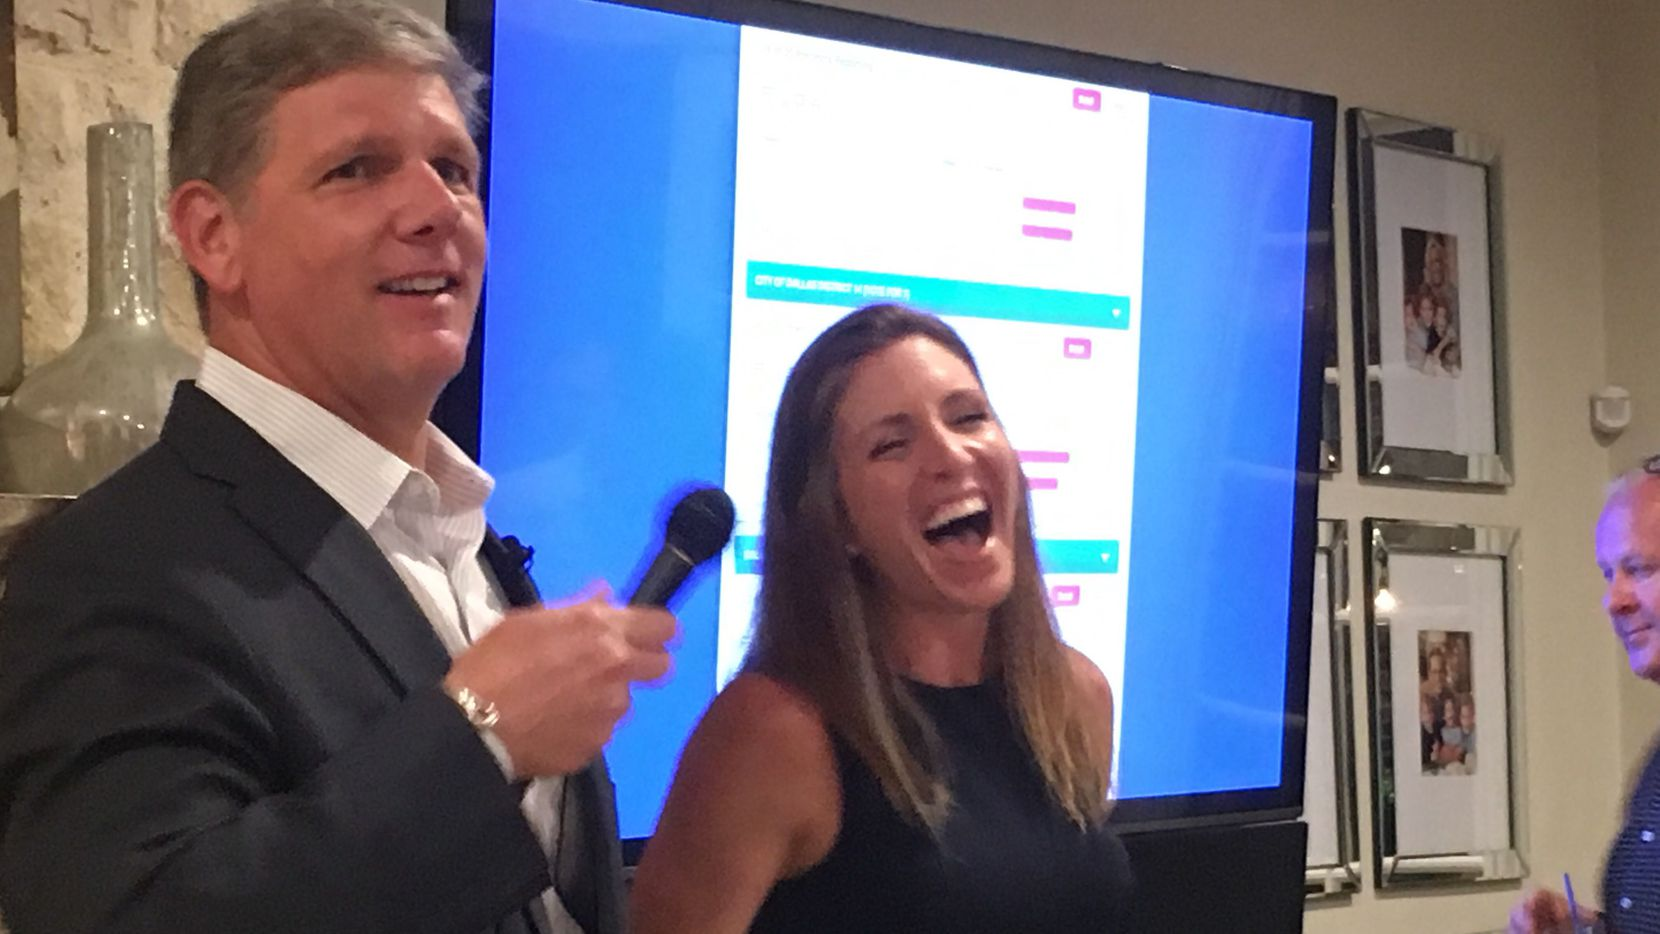 Dallas City Council District 14 candidate David Blewett and his wife Kristin celebrate as results come in from a runoff election on June 8, 2019. Blewett beat three-term incumbent Philip Kingston for the District 14 seat, which covers parts of downtown, Oak Lawn, East Dallas, Deep Ellum and Uptown.